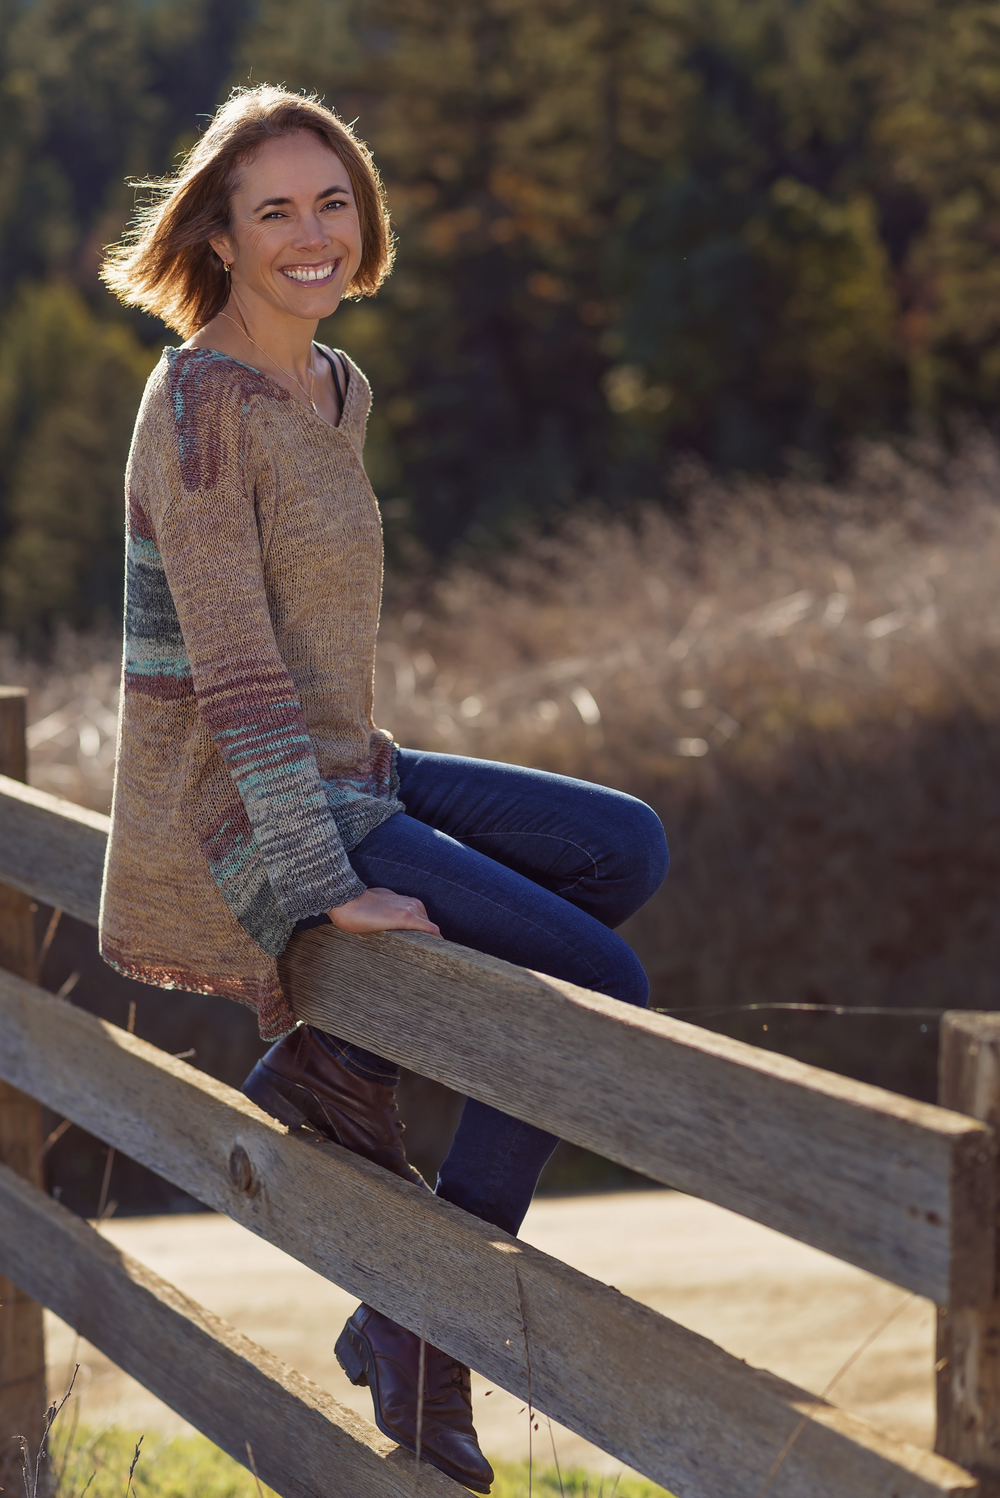 Fierce-Happy-Smile-Fence-Country-Model-Field-Golden-Lighting-Glowing